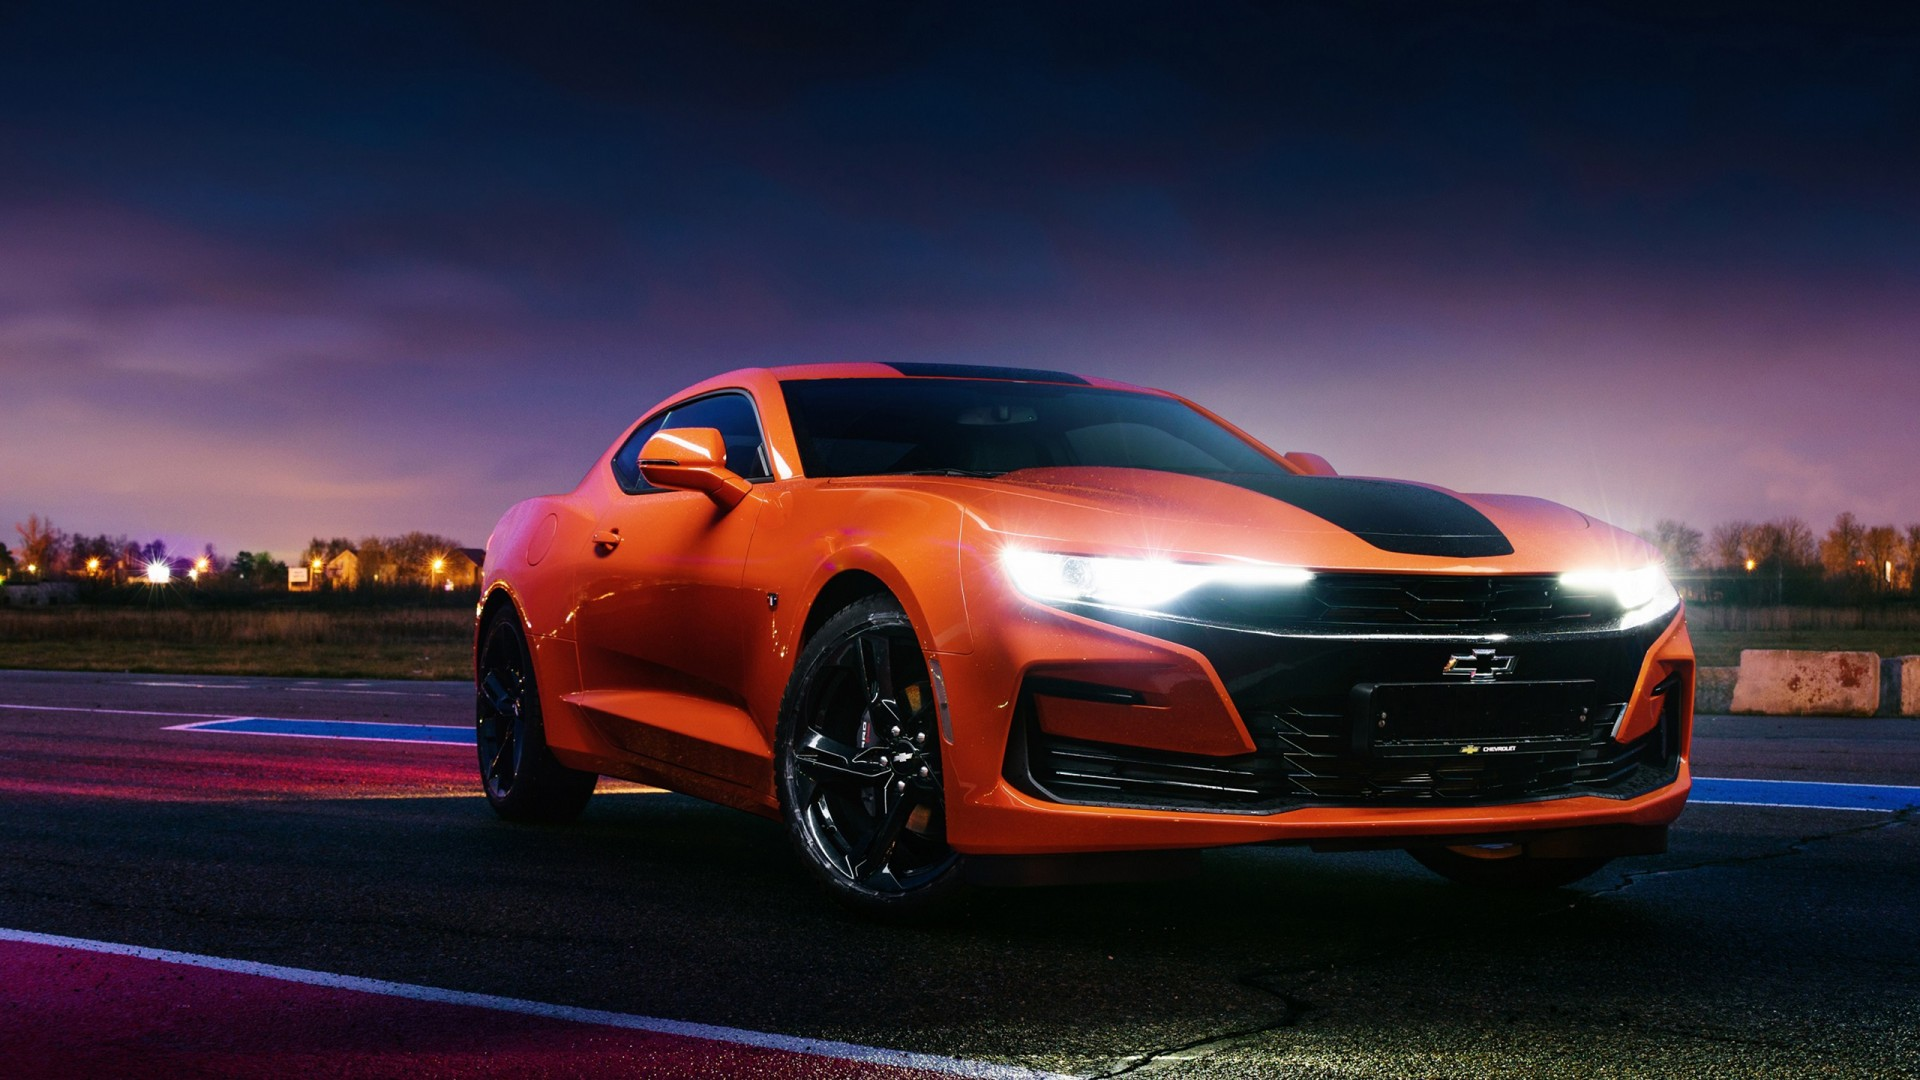 Chevrolet Camaro 2019 Wallpaper | HD Car Wallpapers | ID #11776